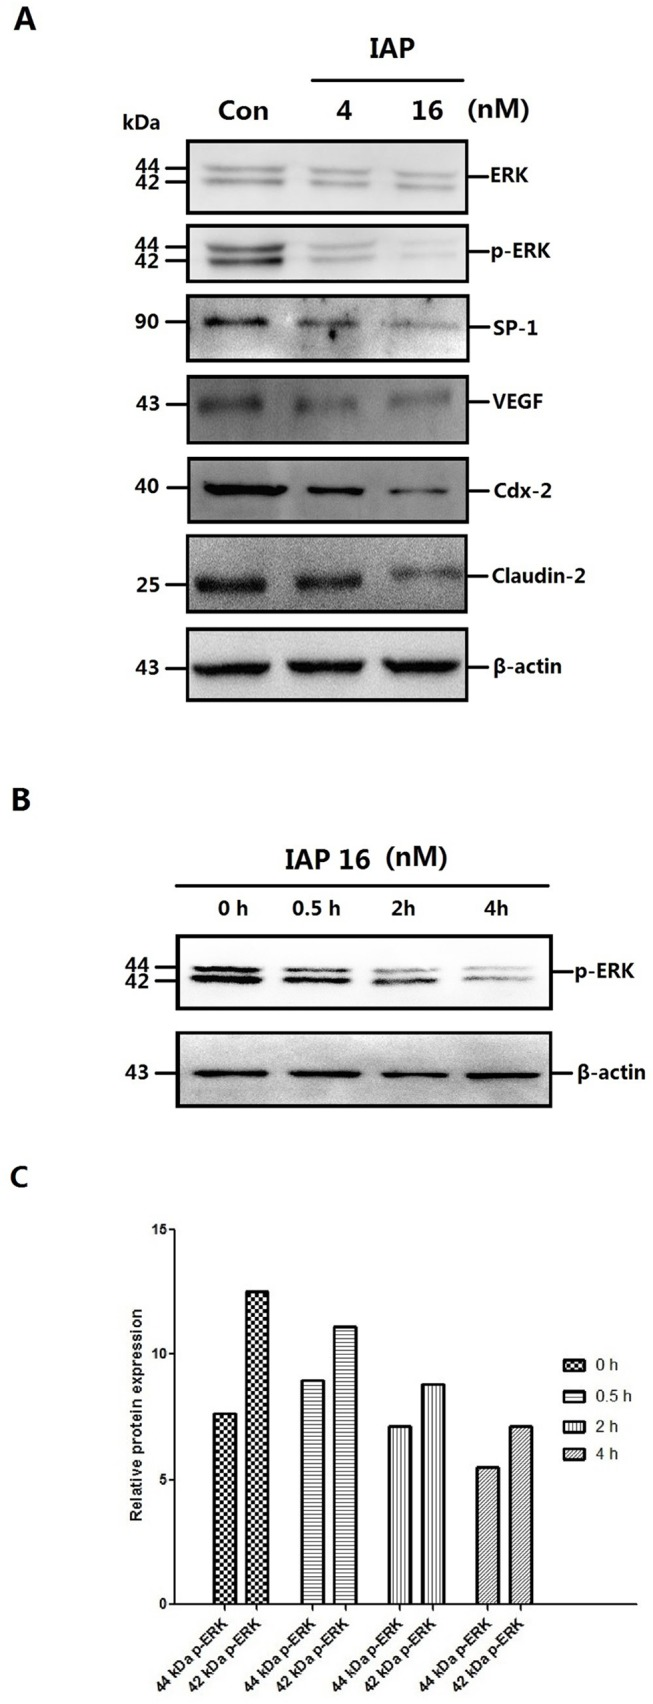 Changes in protein expression and the time course of the changes in the ERK phosphorylation in Caco-2 cells pretreated with IAP. A: Caco-2 cells were treated with increasing concentrations of IAP for 48 h (0, 4, 16 mIU). Whole-cell protein were extracted and subjected to Western blotting. Primary antibodies of ERK, p-ERK, SP-1, VEGF, Cdx-2 or Claudin-2 were used for the blotting assays. β-Actin immunoblotting was performed as an internal loading control. B: Caco-2 cells were treated with 16 mIU IAP for varying lengths of time (0, 0.5, 2 or 4 h). Upper figure, levels of phosphorylated ERK detected by Western blotting. C: The quantification of ERK and p-ERK Western blotting data of the dose-cause; blots were analyzed using the Image J software. D: The quantification of other proteins Western blotting data of the dose-cause; blots were analyzed using the Image J software. E: The quantification of ERK and p-ERK Western blotting data of the time-cause; blots were analyzed using the Image J software.